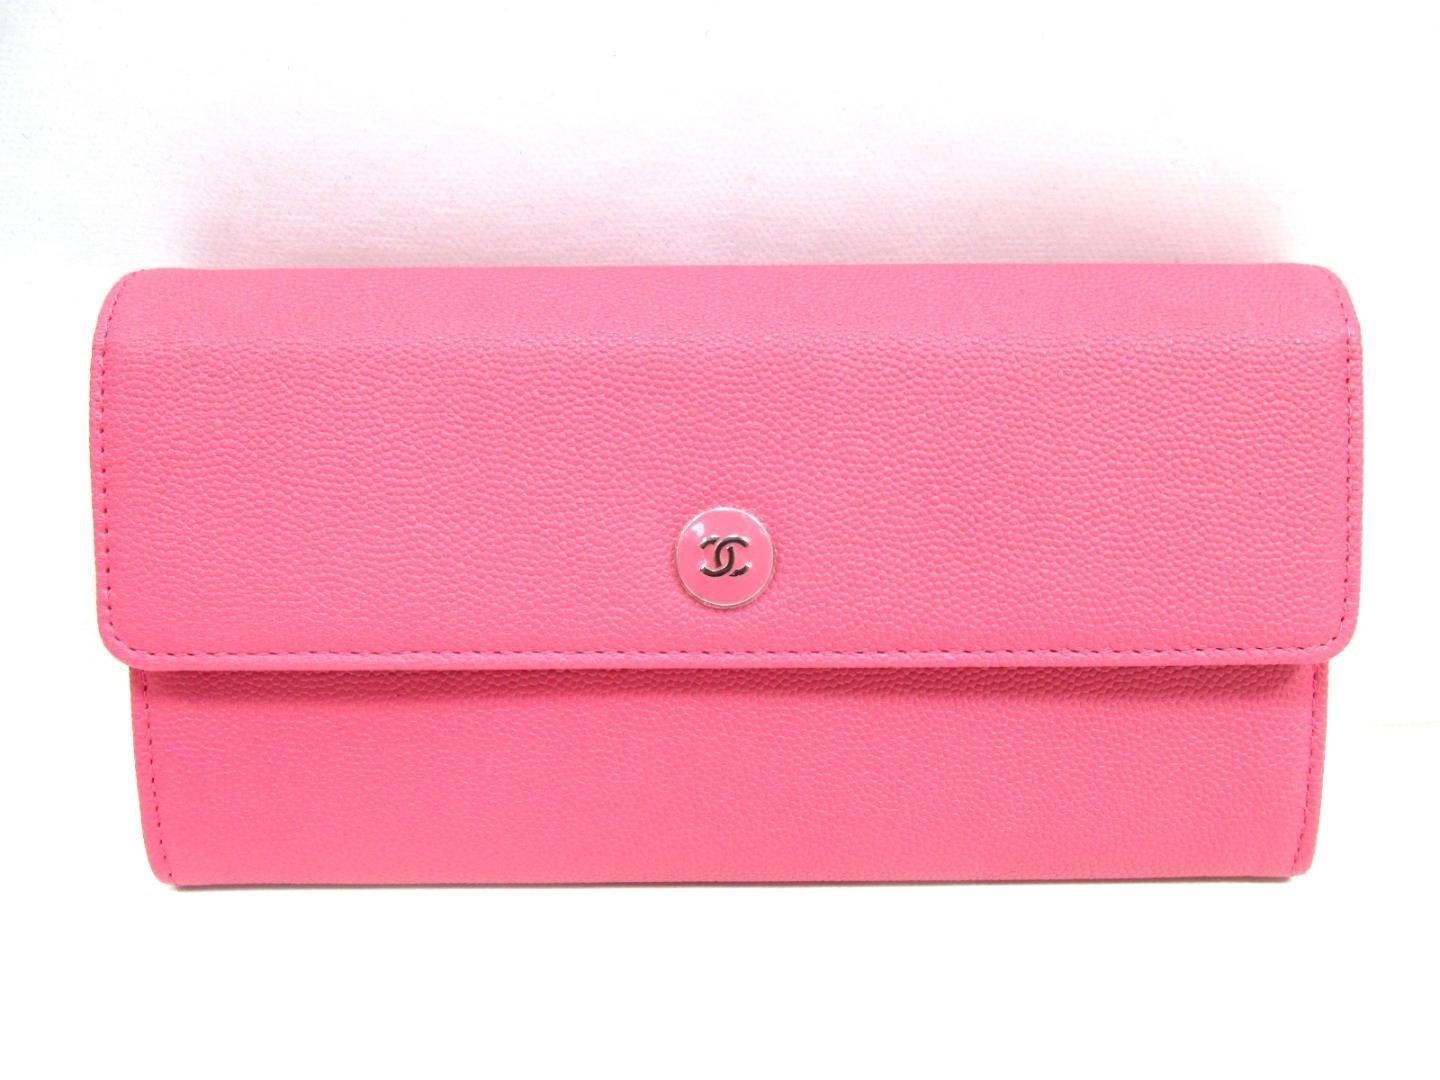 bc76c13a6c6c Chanel Coco Zip Long Wallet Bi-fold Purse Grain Goatskin Pink in ...